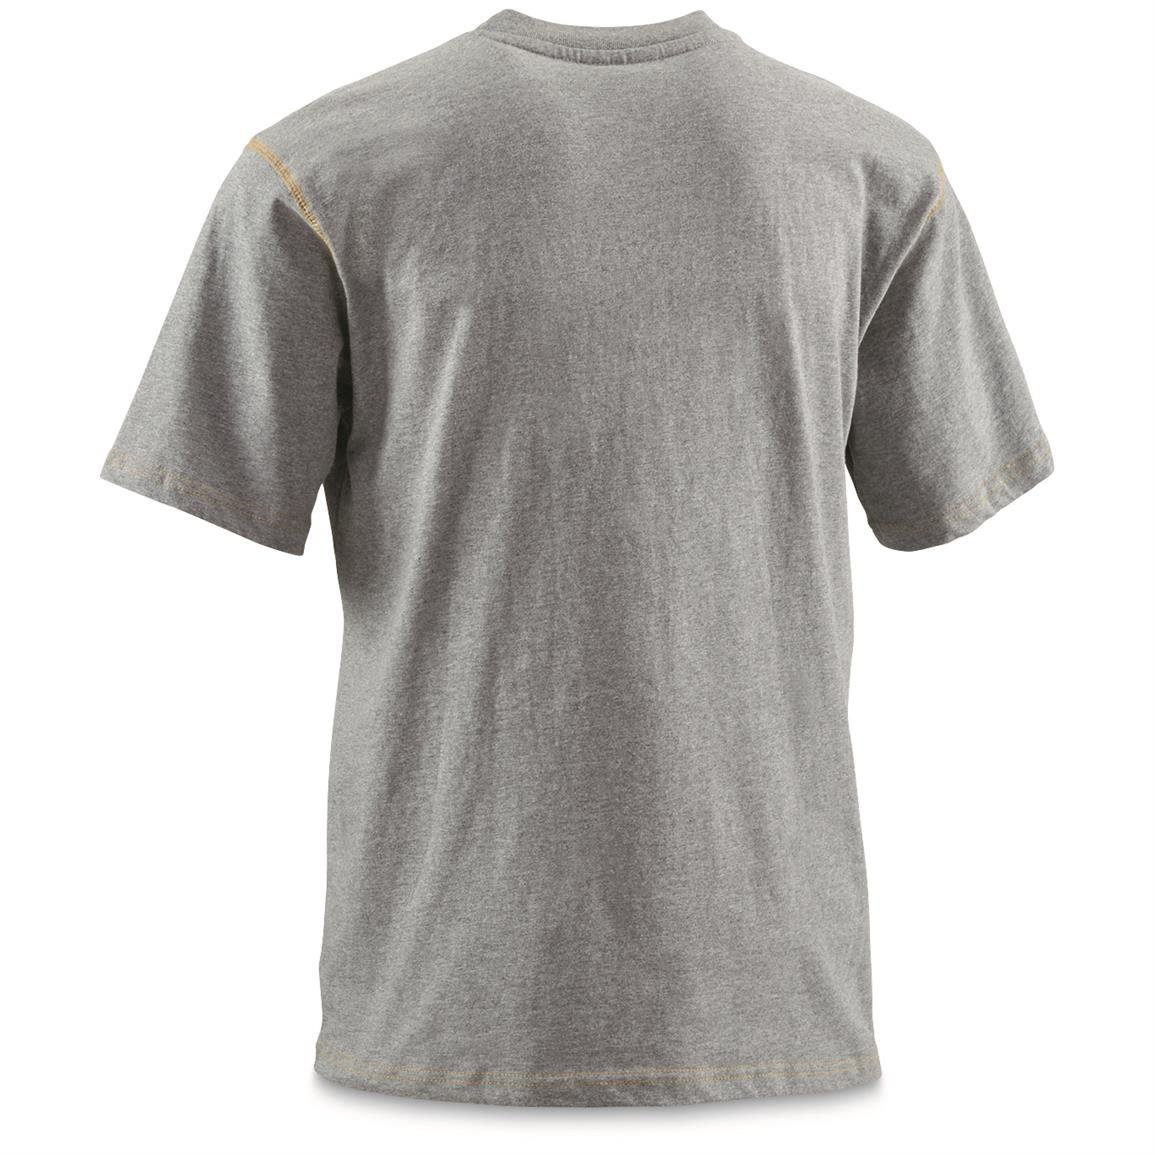 Reinforced double stitched neckline • Gray